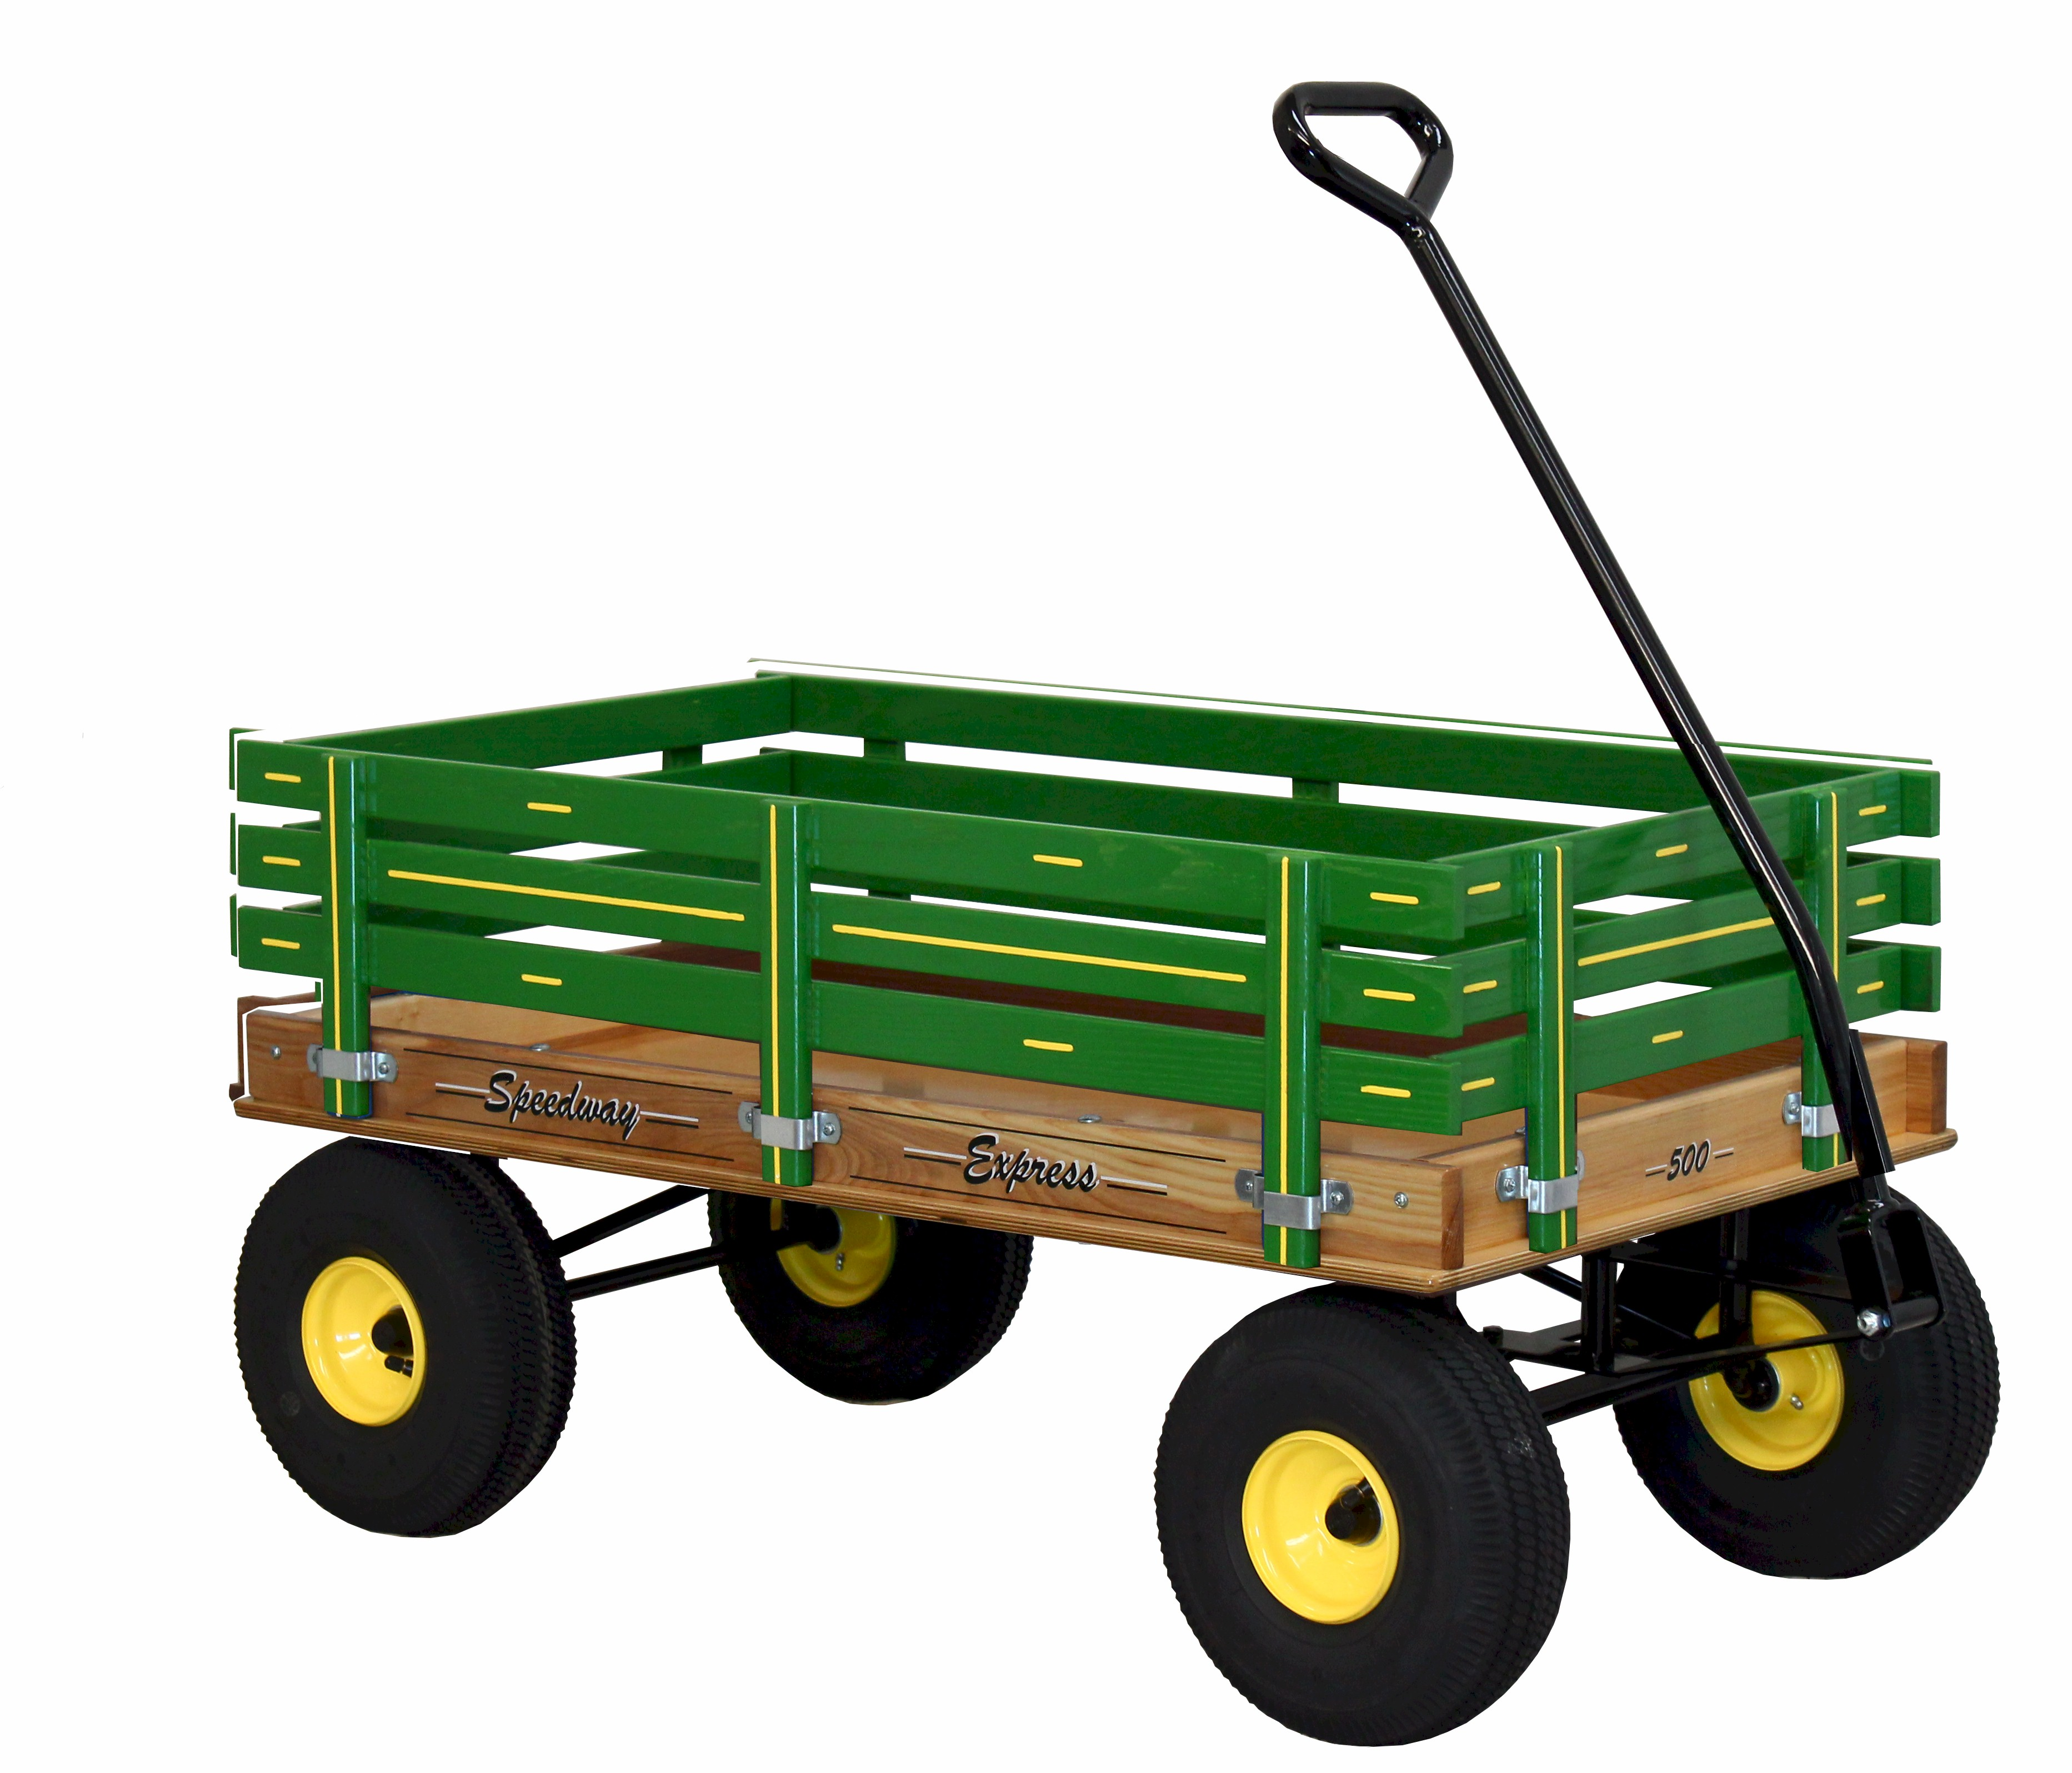 Speedway Express Wagons Tricycles Trikes Amish Wagon ...